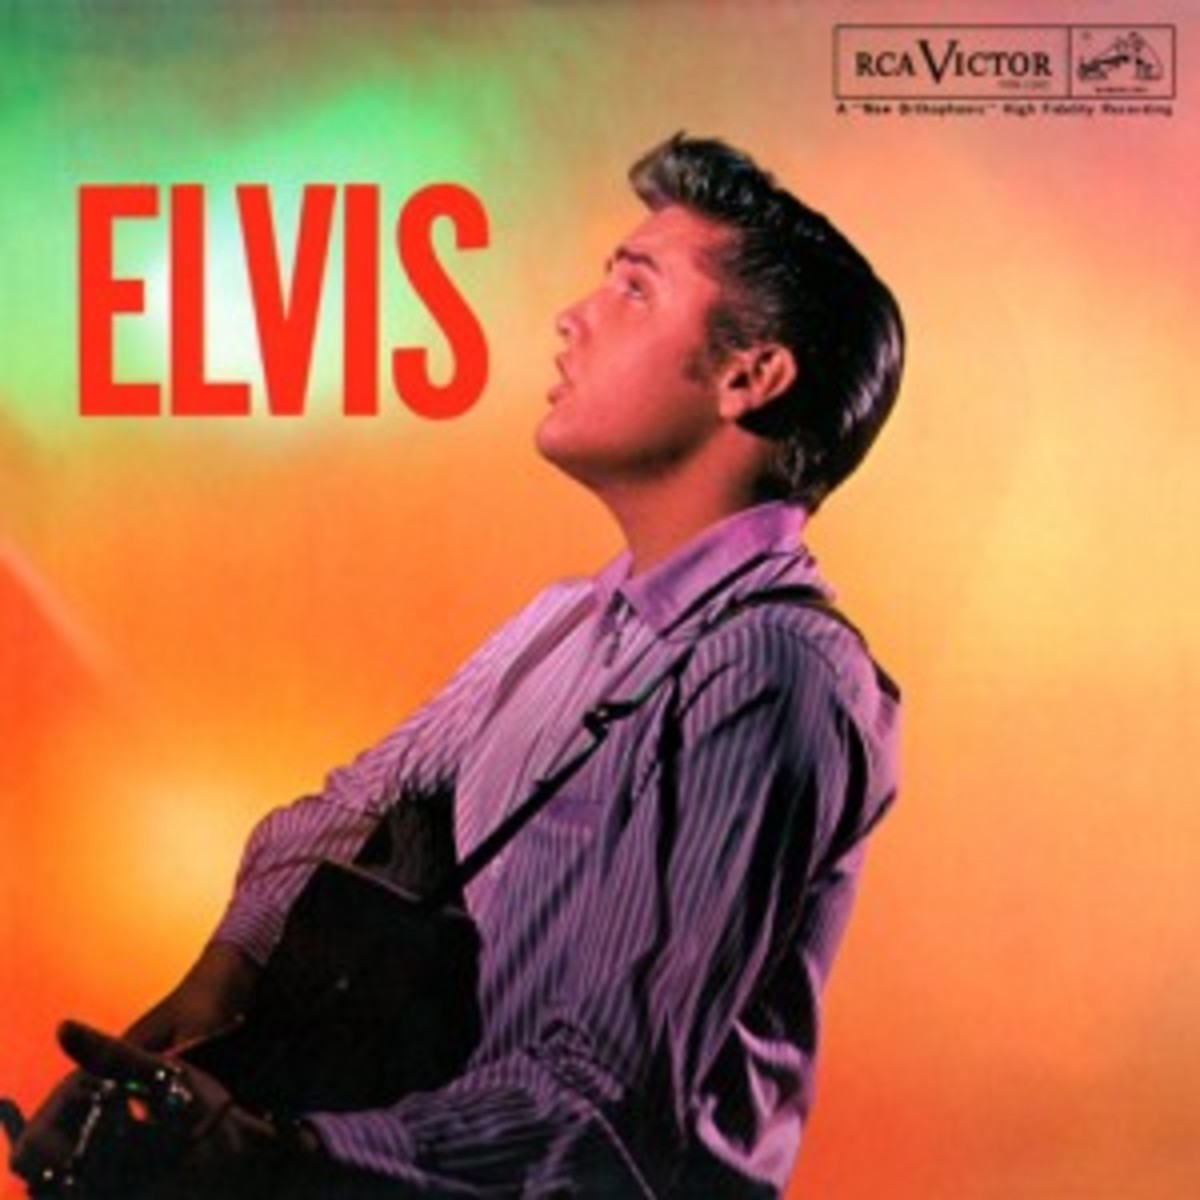 Elvis Presley album reissue by Friday Music